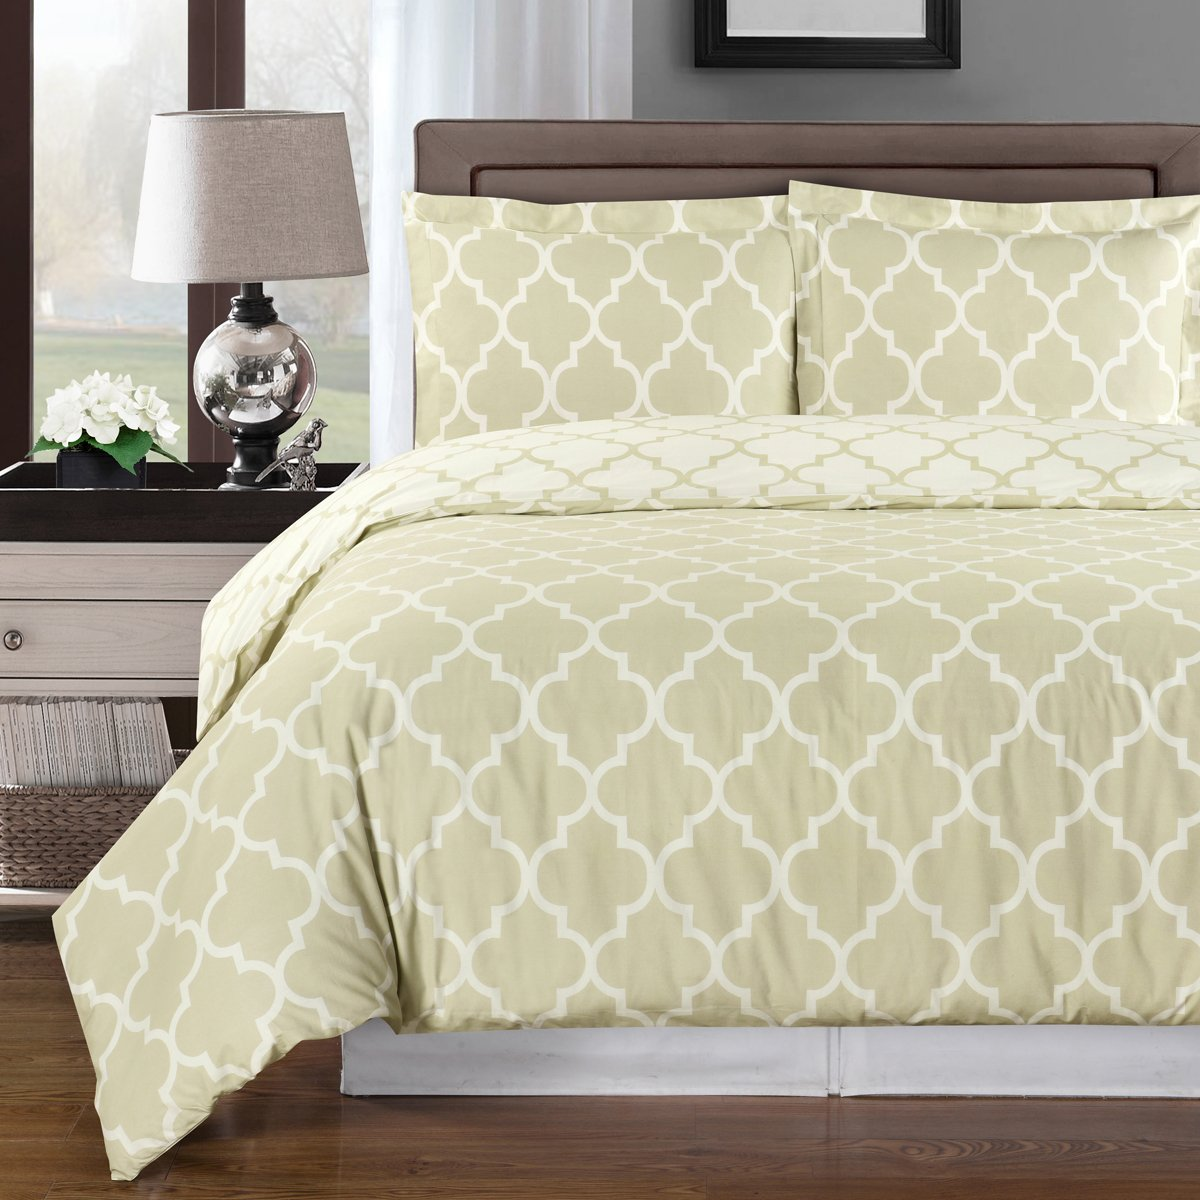 free bedding bath today madison set cover overstock shipping product piece dune beige duvet park